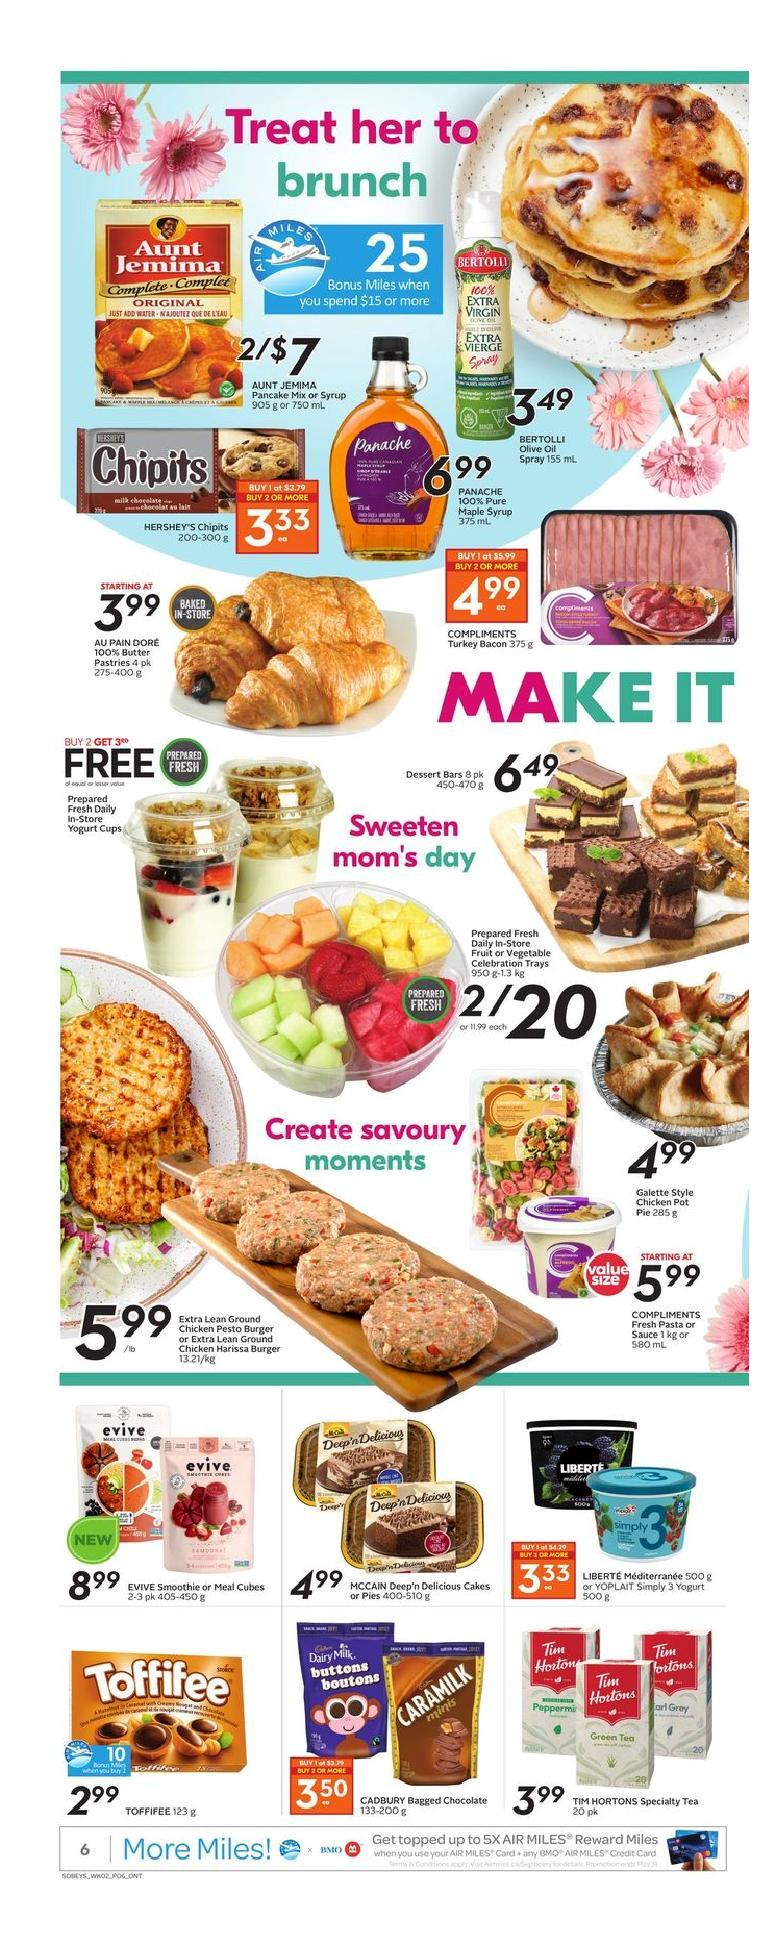 10 Sobeys ON Flyer May 6 May 12 2021